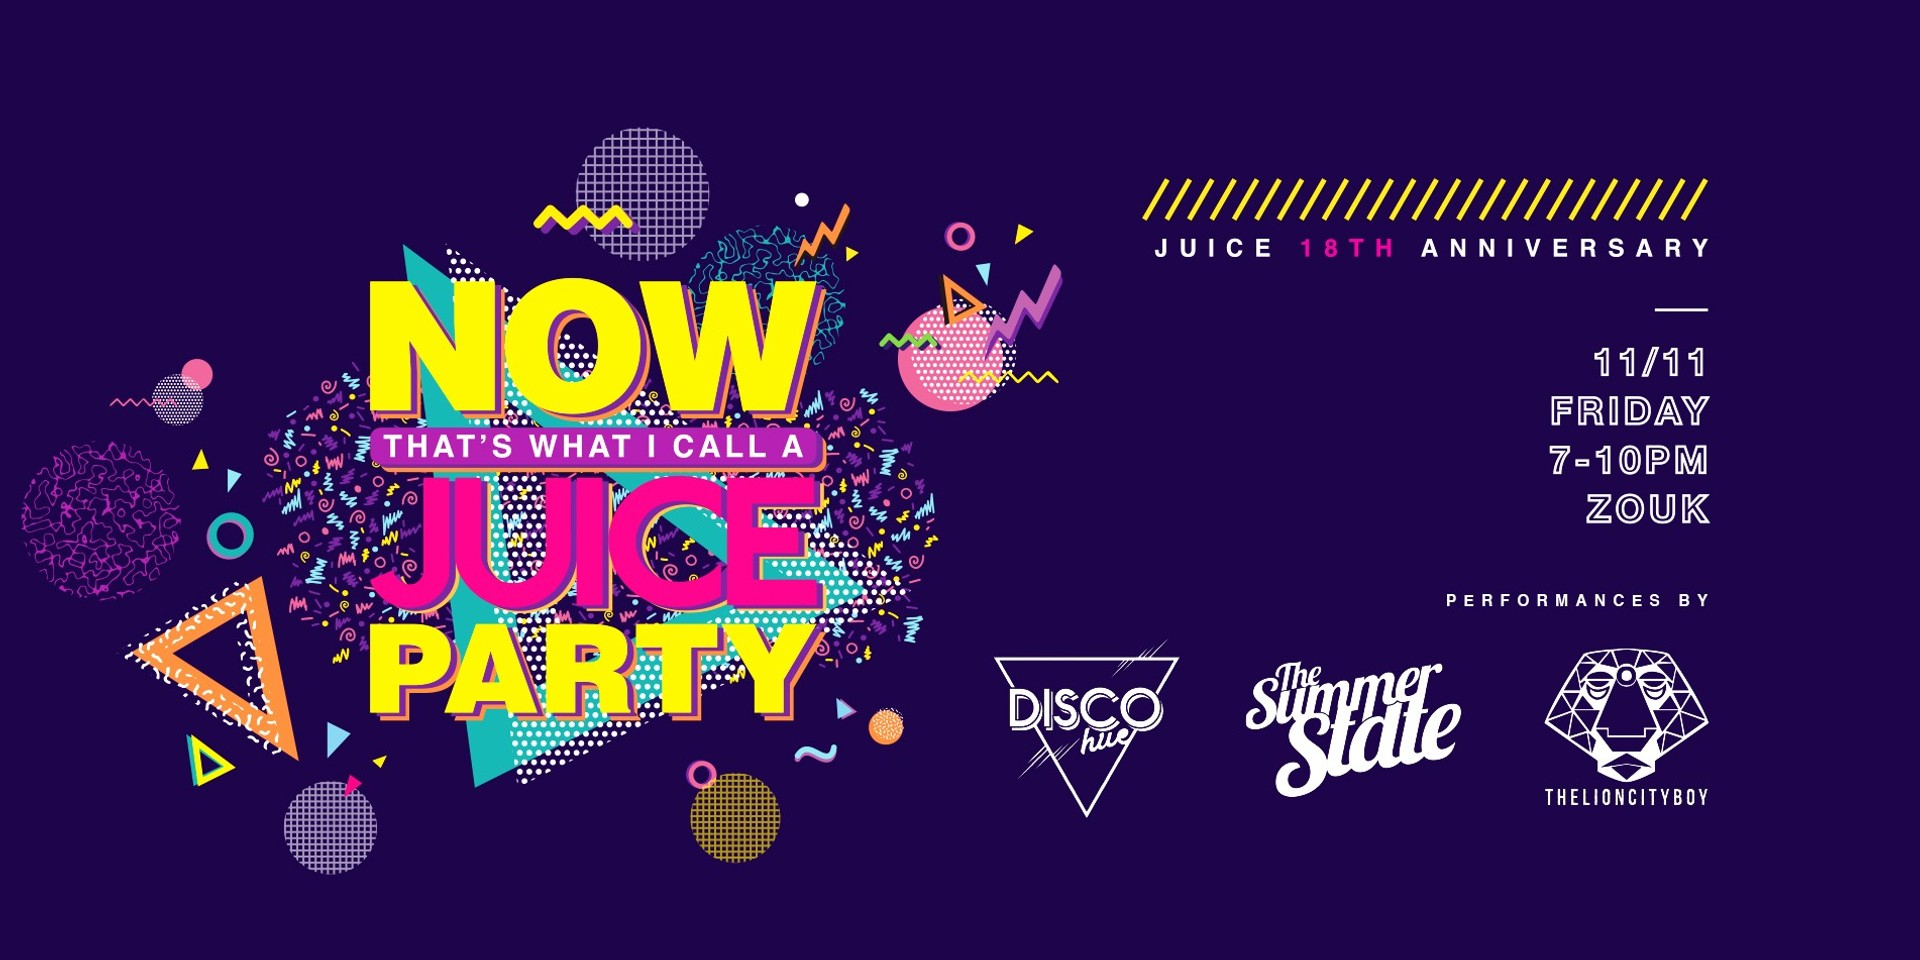 JUICE Singapore throws back to the 90s' for their 18th birthday with The Summer State, Disco Hue & THELIONCITYBOY